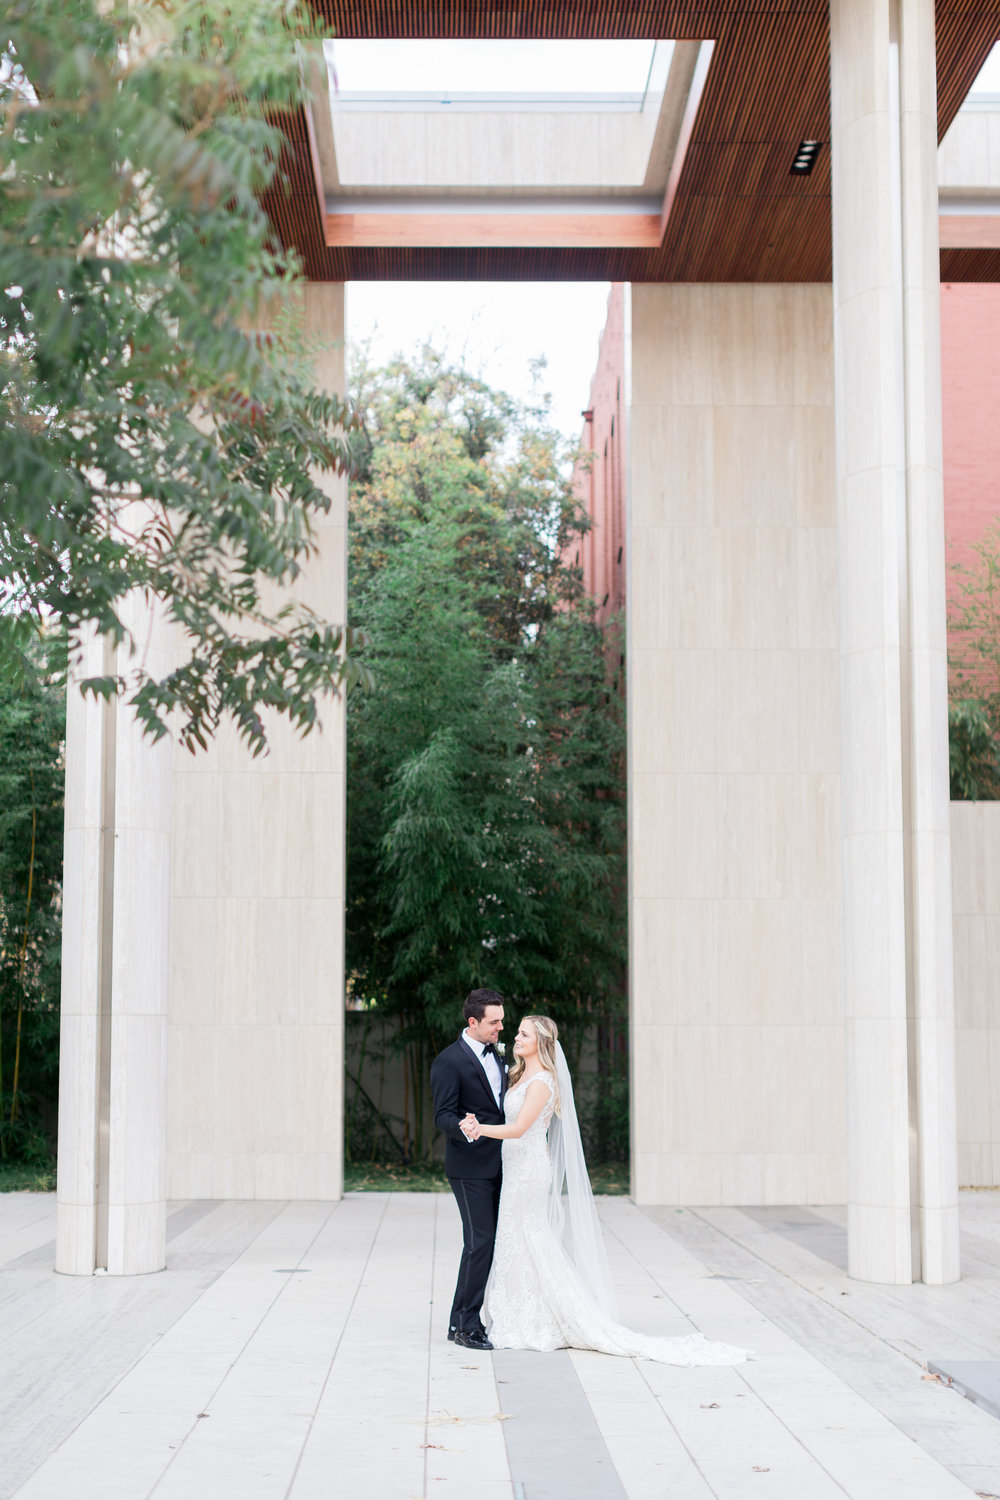 Downtown-San-Jose-wedding-photographer (86 of 335).jpg